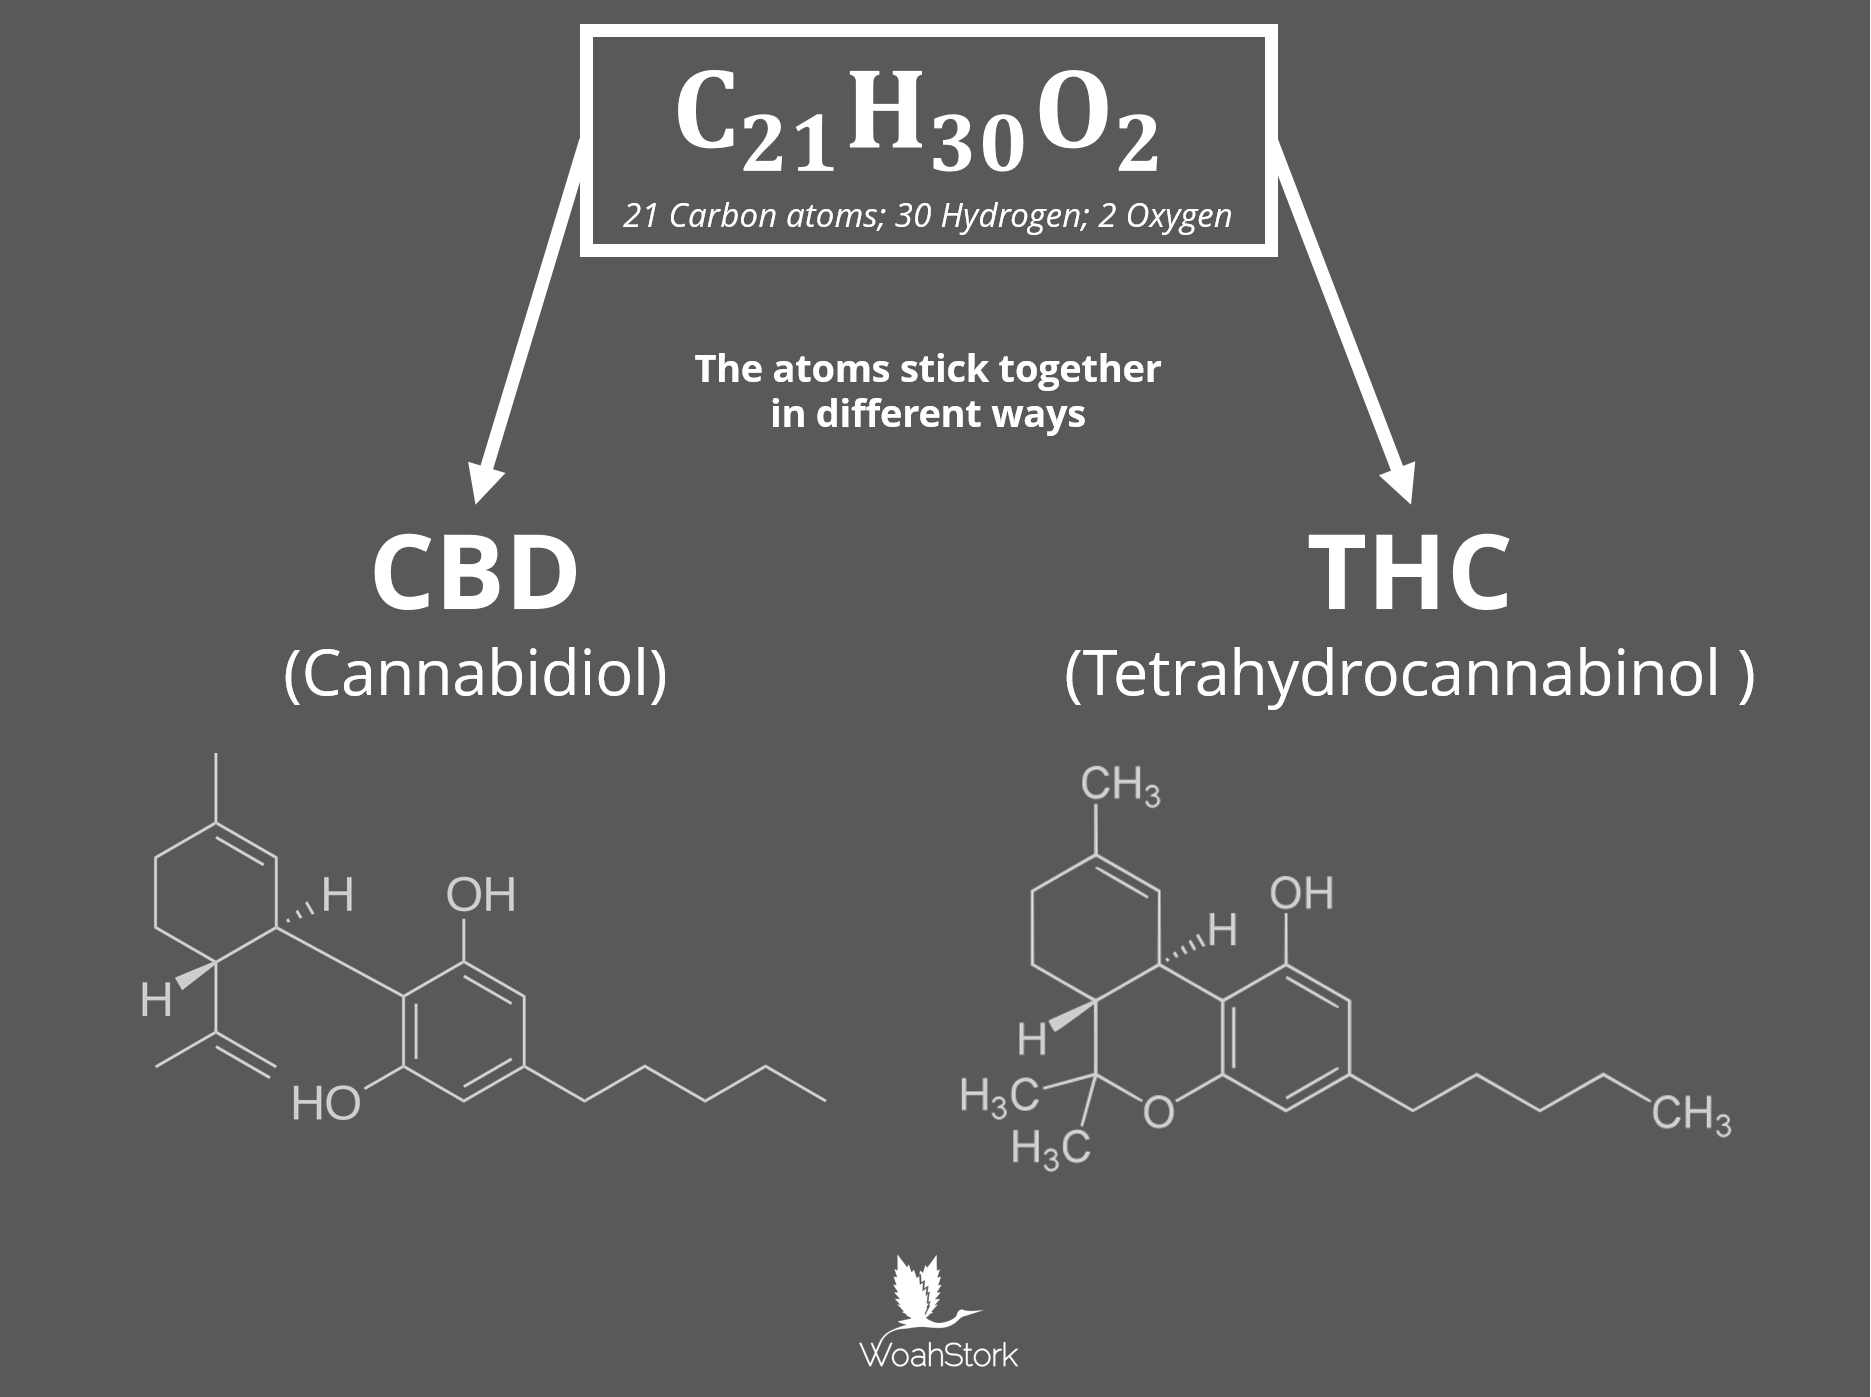 CBD vs. THC atoms rearrange from C21H30O2